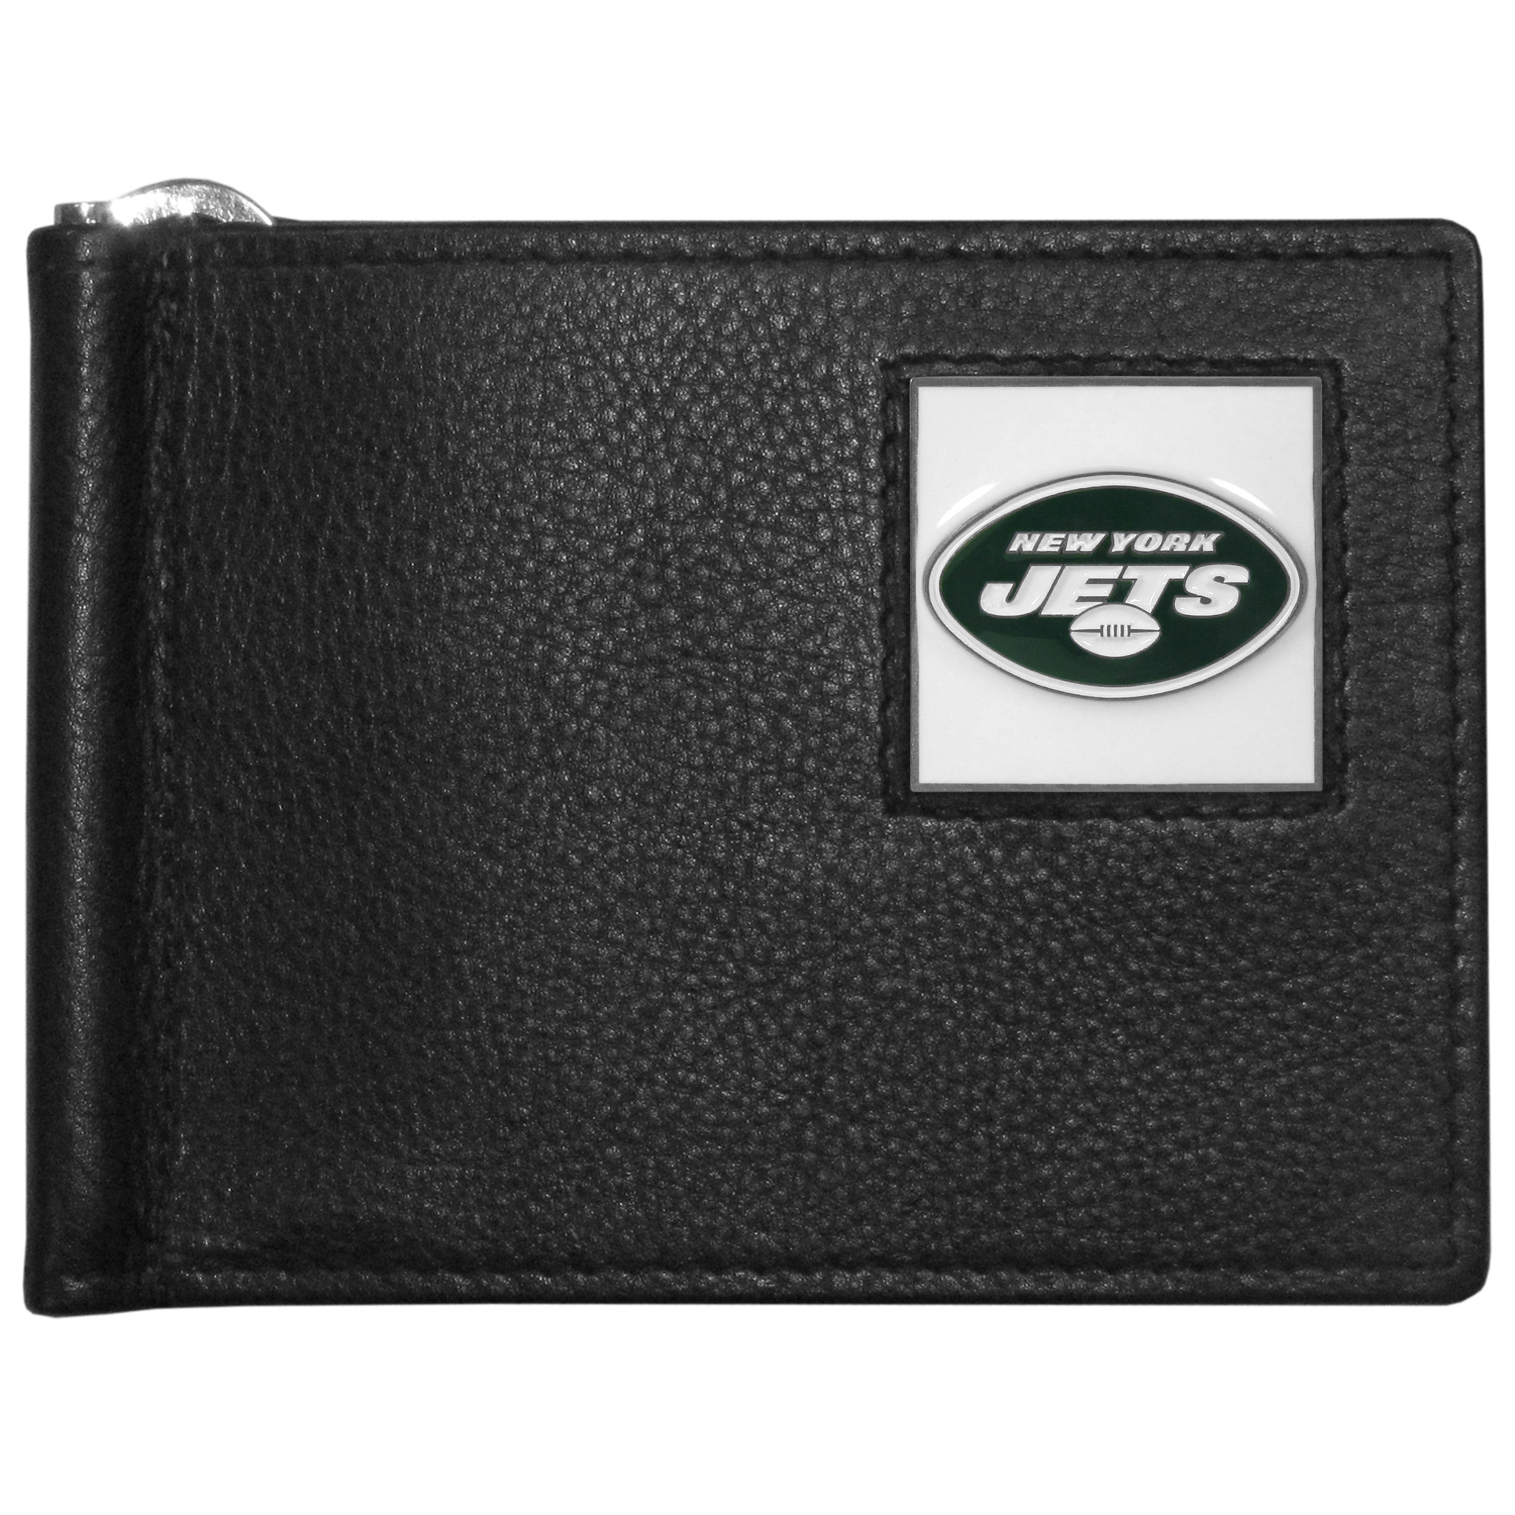 New York Jets Leather Bill Clip Wallet - This cool new style wallet features an inner, metal bill clip that lips up for easy access. The super slim wallet holds tons of stuff with ample pockets, credit card slots & windowed ID slot.  The wallet is made of genuine fine grain leather and it finished with a metal New York Jets emblem. The wallet is shipped in gift box packaging.